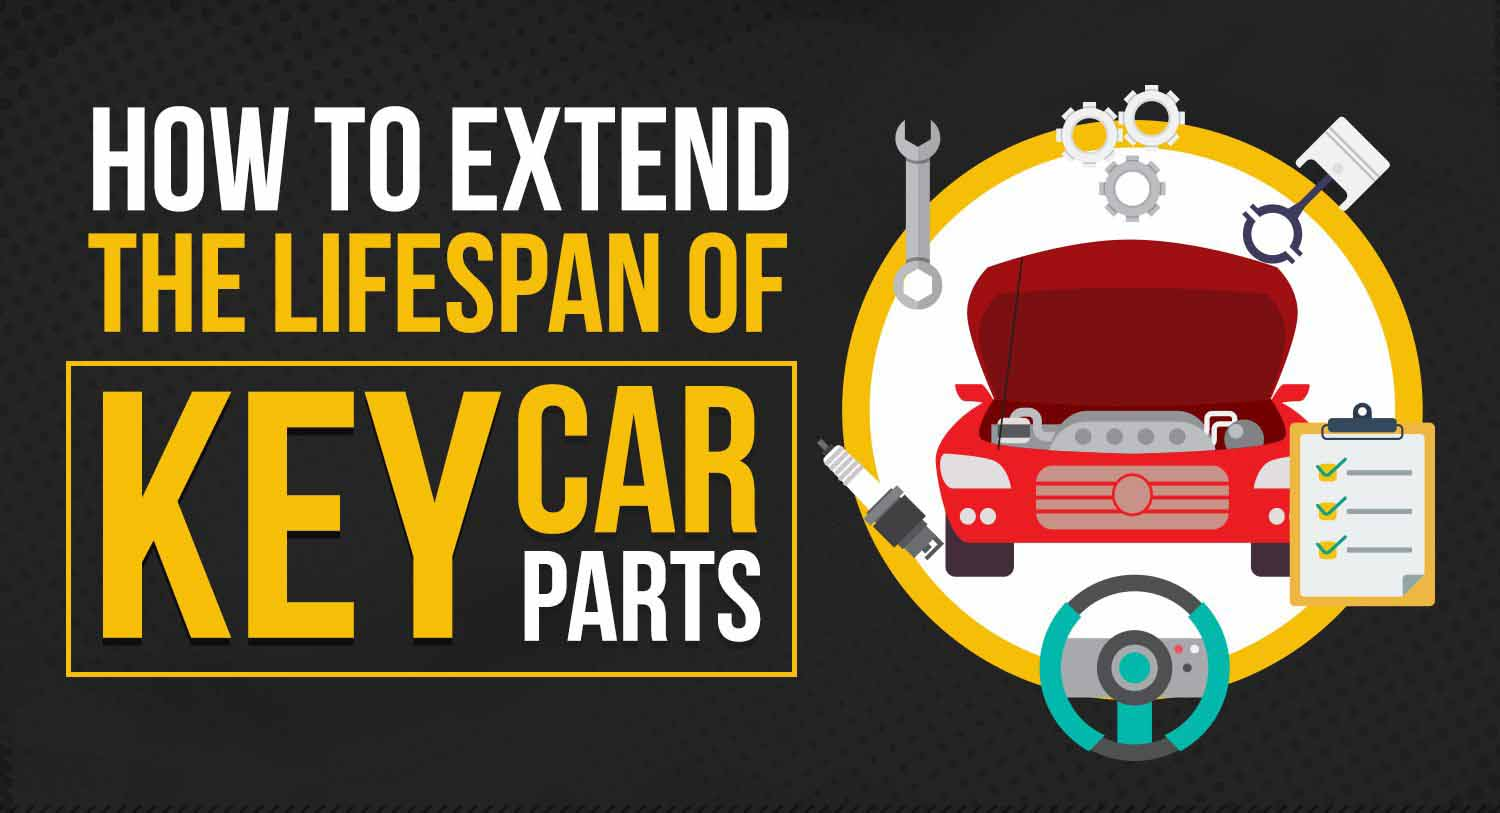 How To Extend The Lifespan Of Key Car Parts